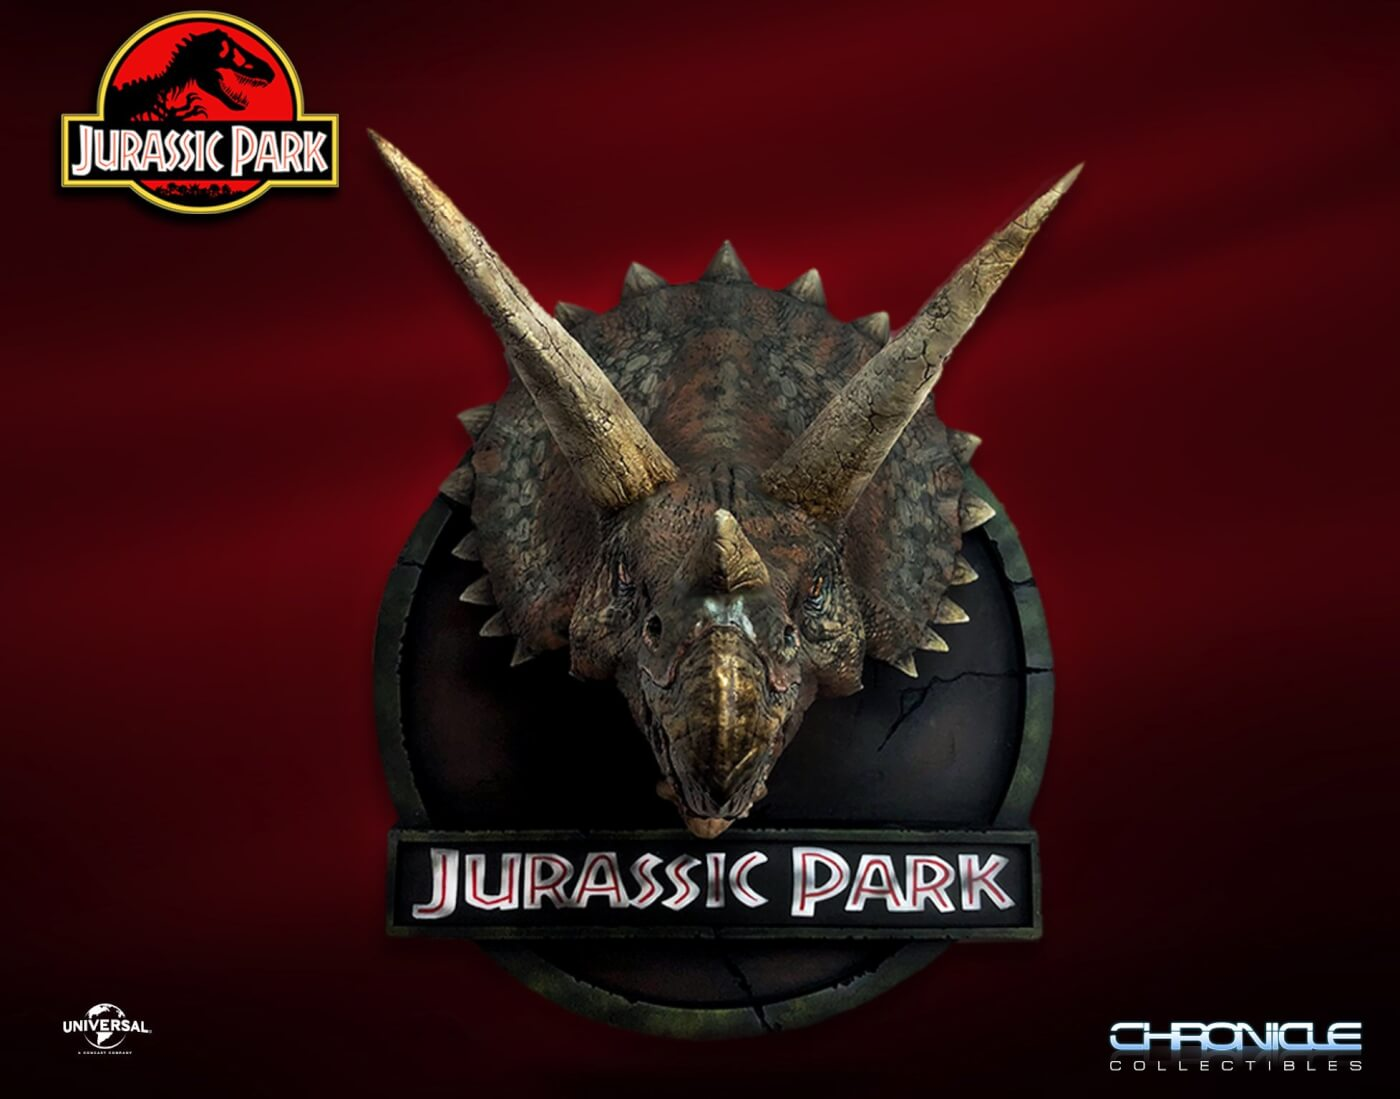 Chronicle Collectibles Announces 1:5 scale Jurassic Park Triceratops Bust is available for Pre-Order